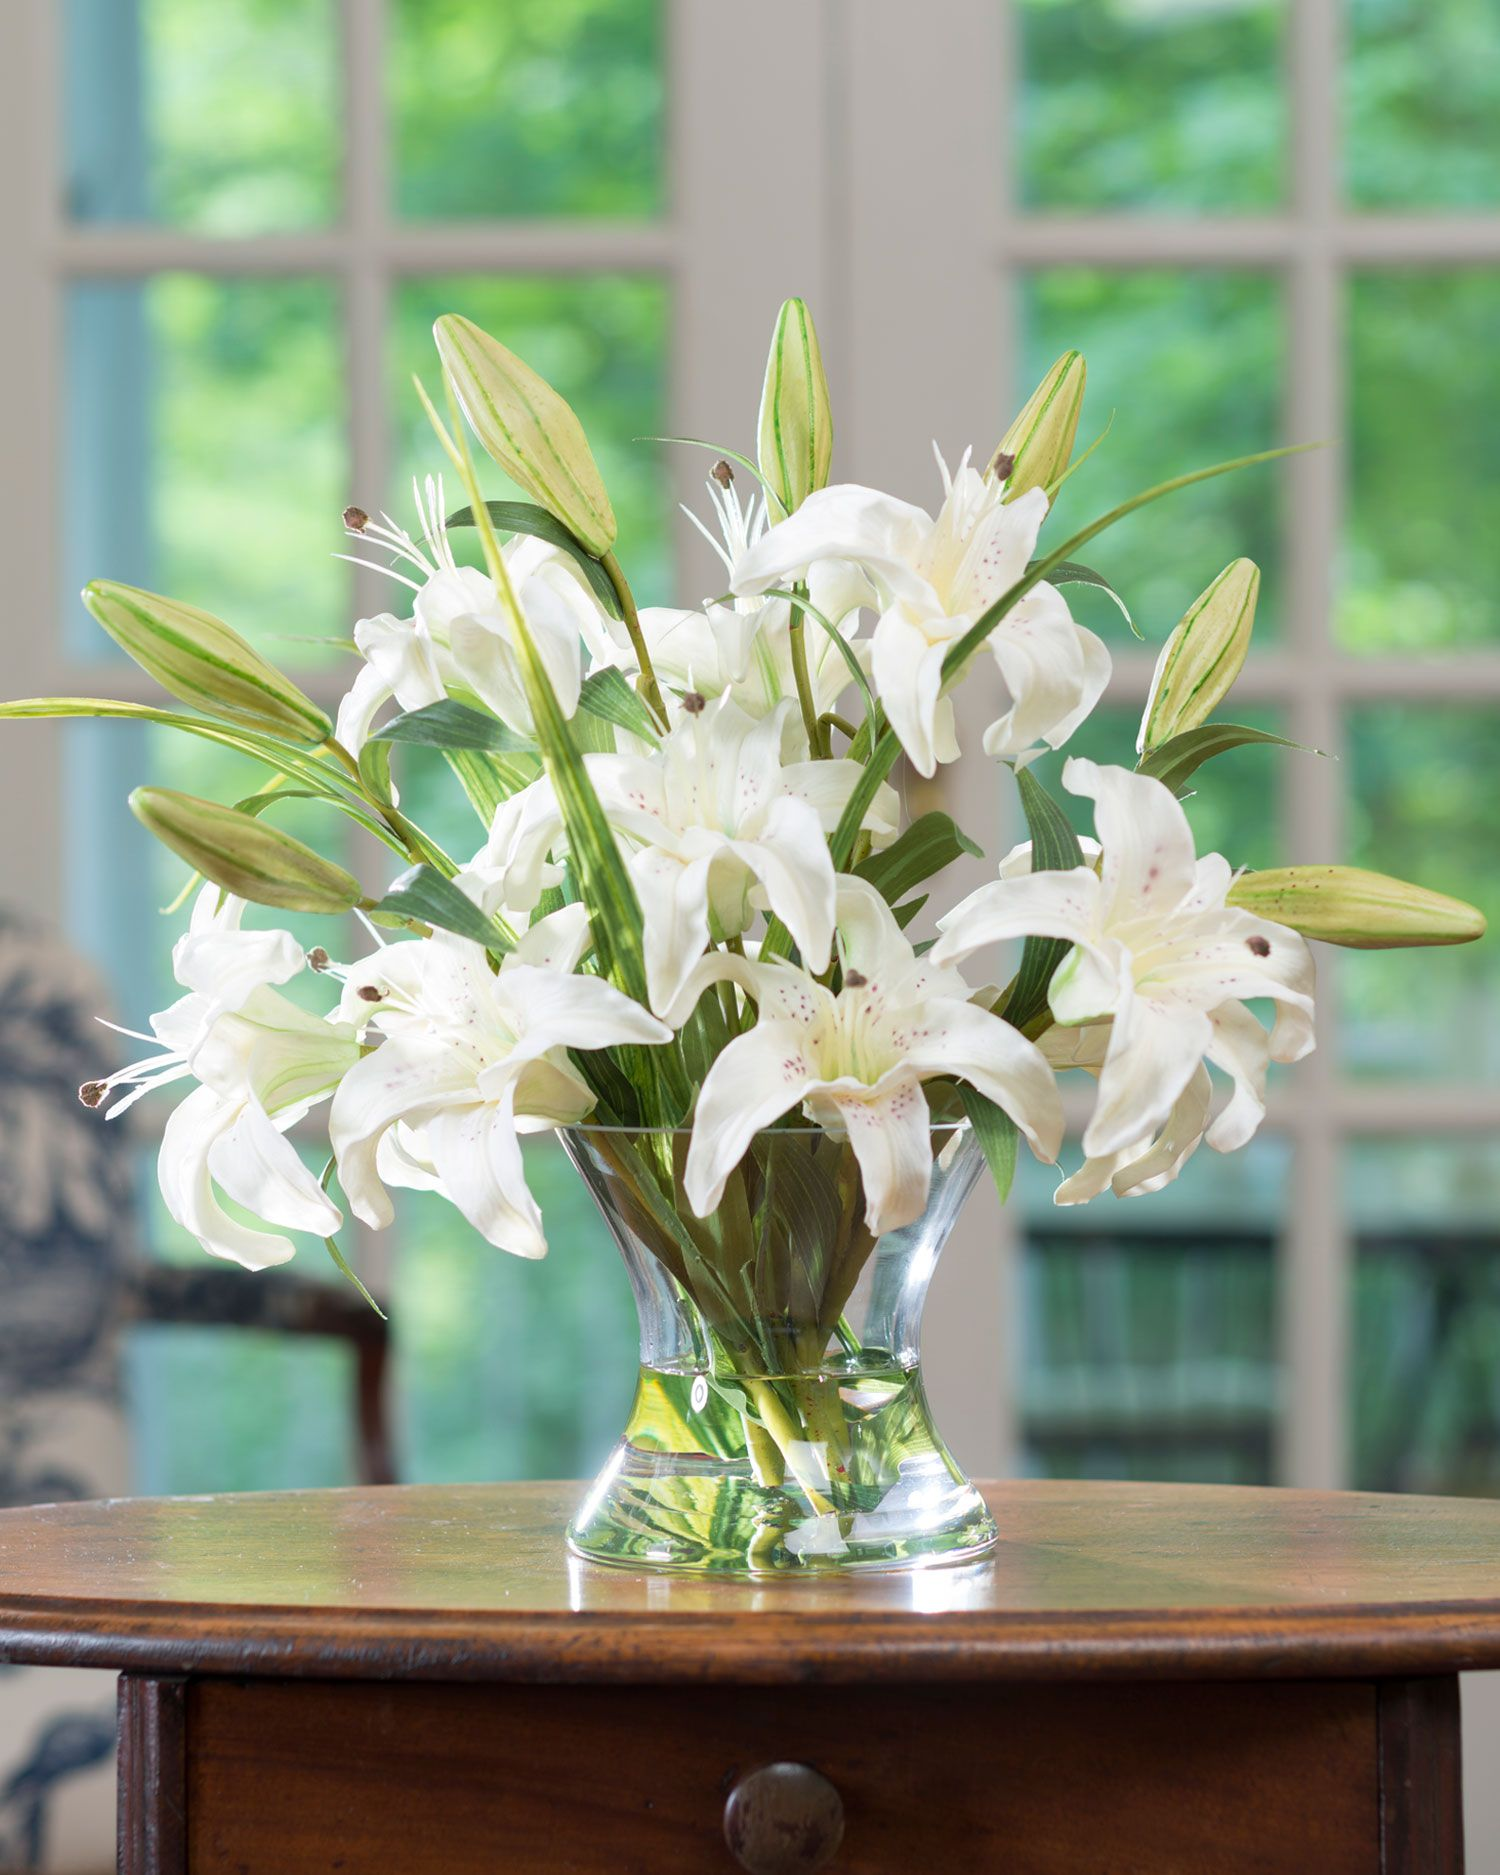 Real touch large white lily centerpiece with blades of tall grass real touch large white lily centerpiece with blades of tall grass mingled in unopened lily buds reviewsmspy